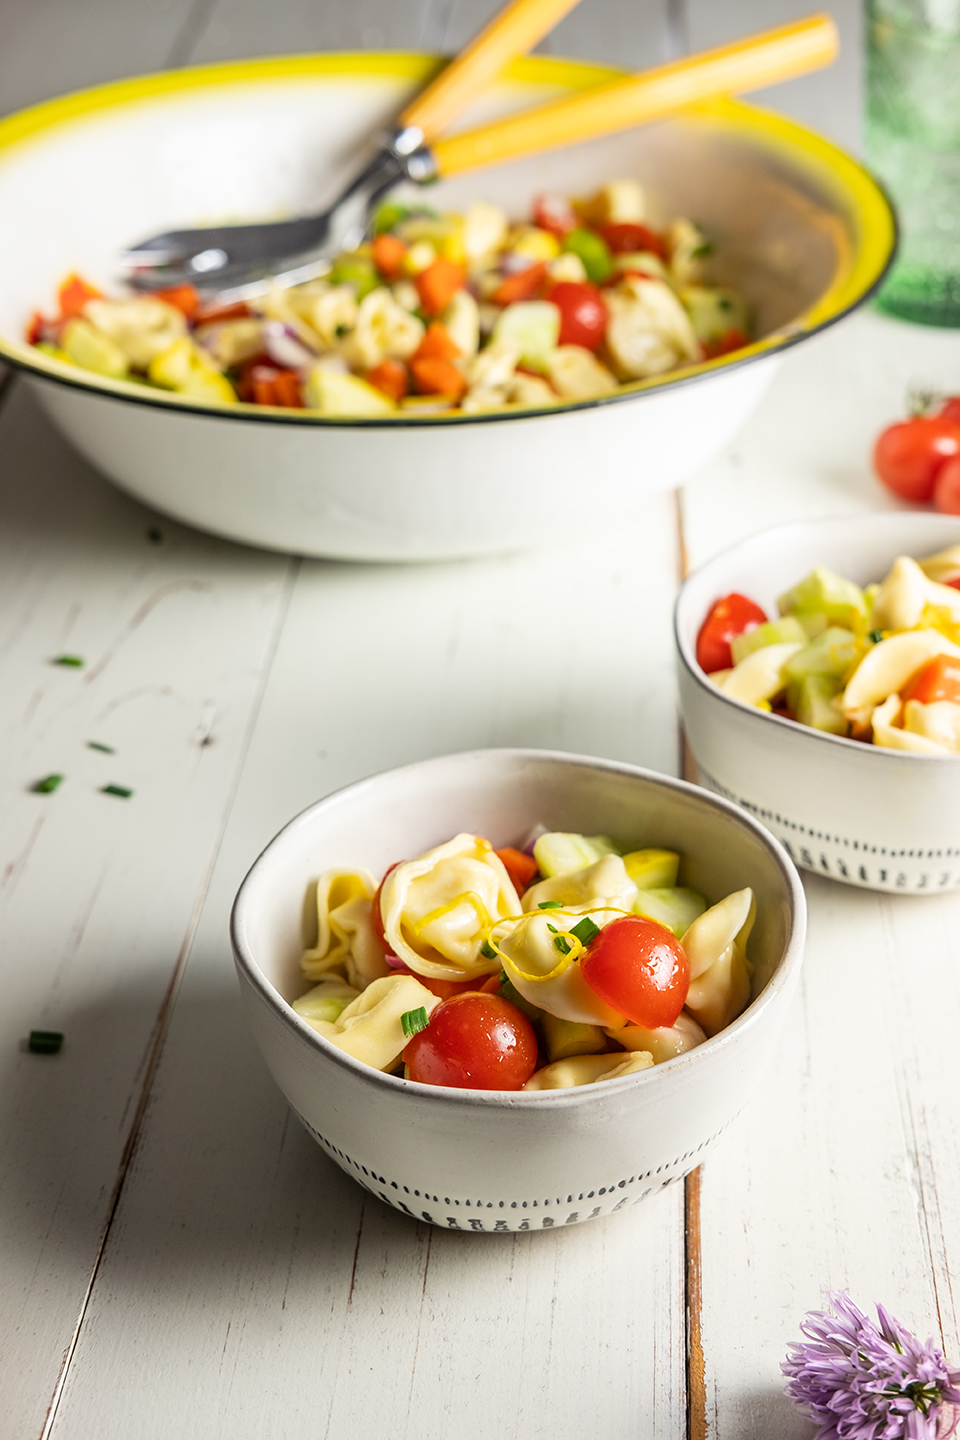 retouched Serving bowl of tortellini salad and tomatoes on white wooden surface